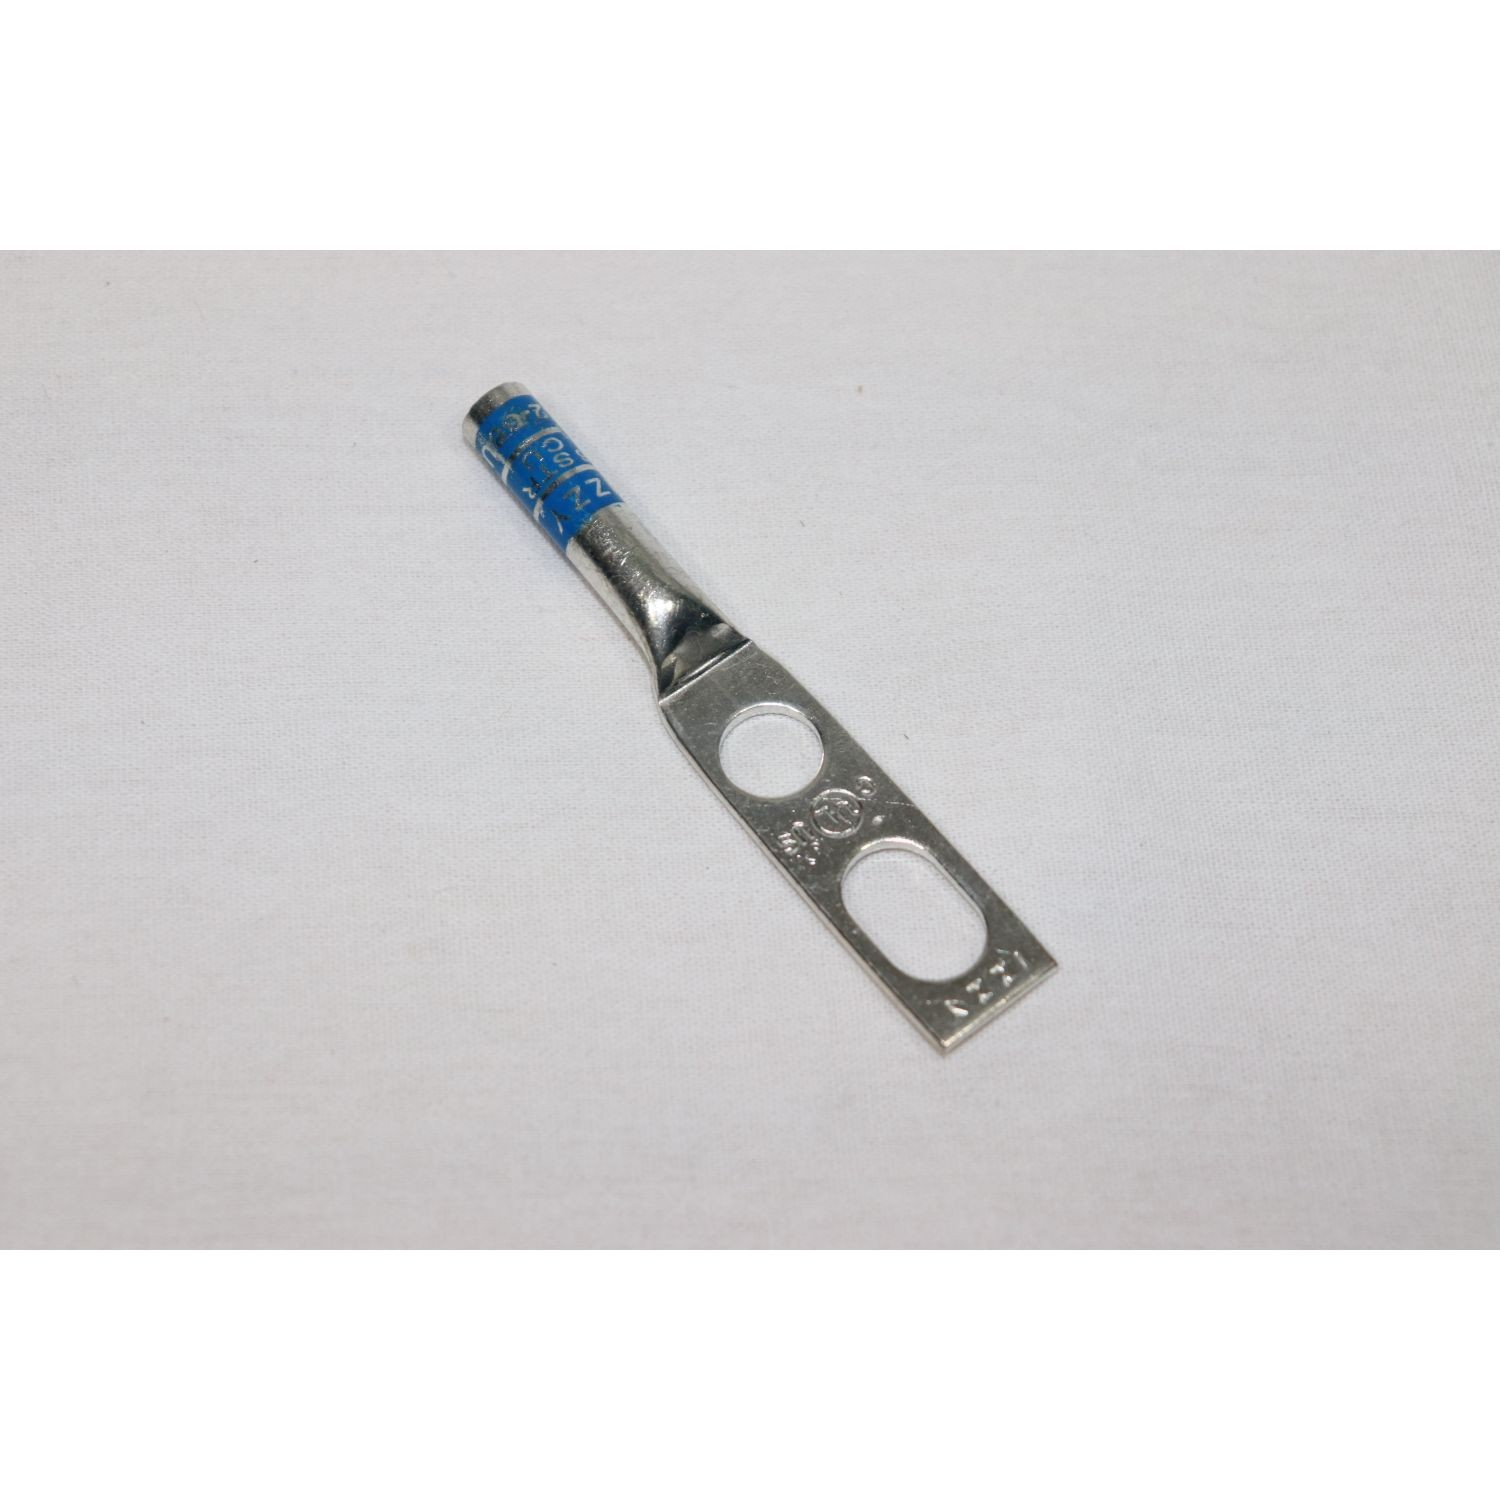 "# 6 Stranded – 2 Hole Universal, no window, 3/8"" Stud with 3/4 IN. TO 1 IN. SPACING, Long Barrel Copper Compression Lug, Blue"